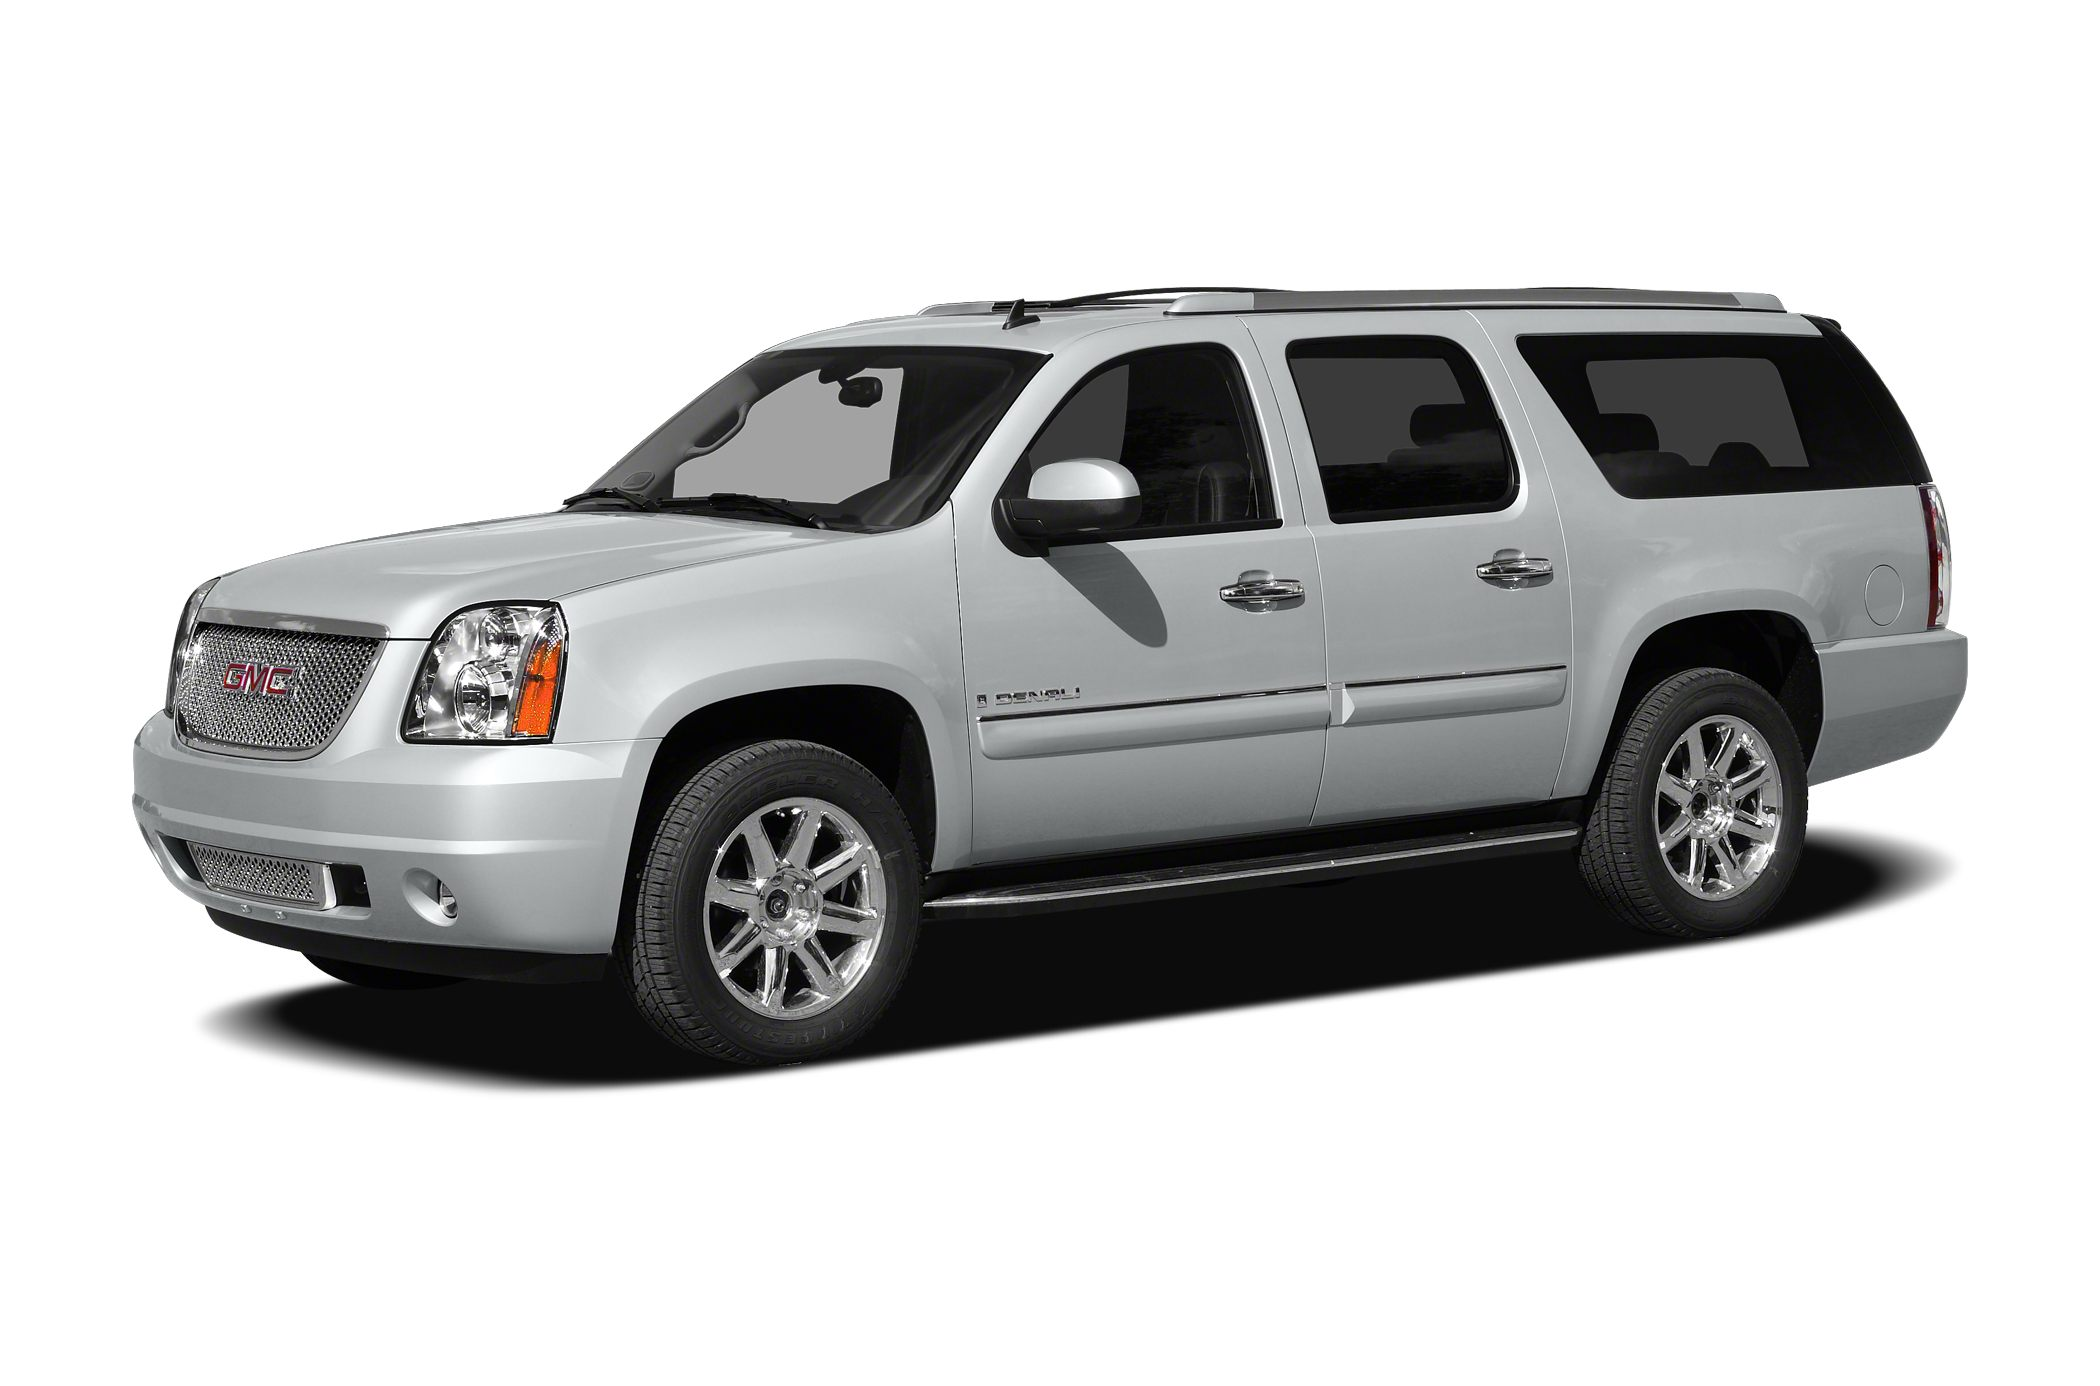 2011 GMC Yukon XL Denali SUV for sale in Highlands Ranch for $40,991 with 45,832 miles.